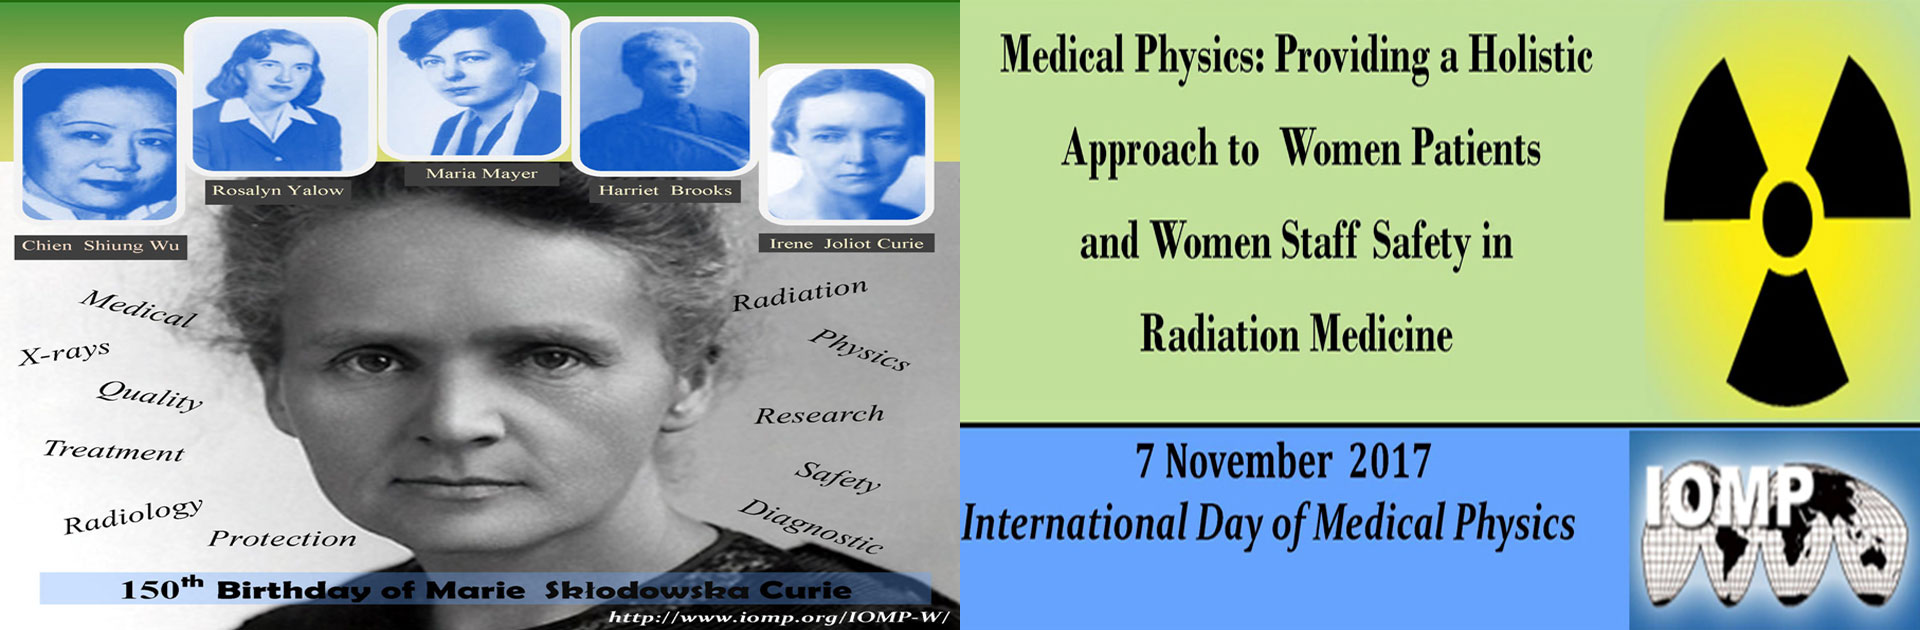 International Day of Medical Physics 2017